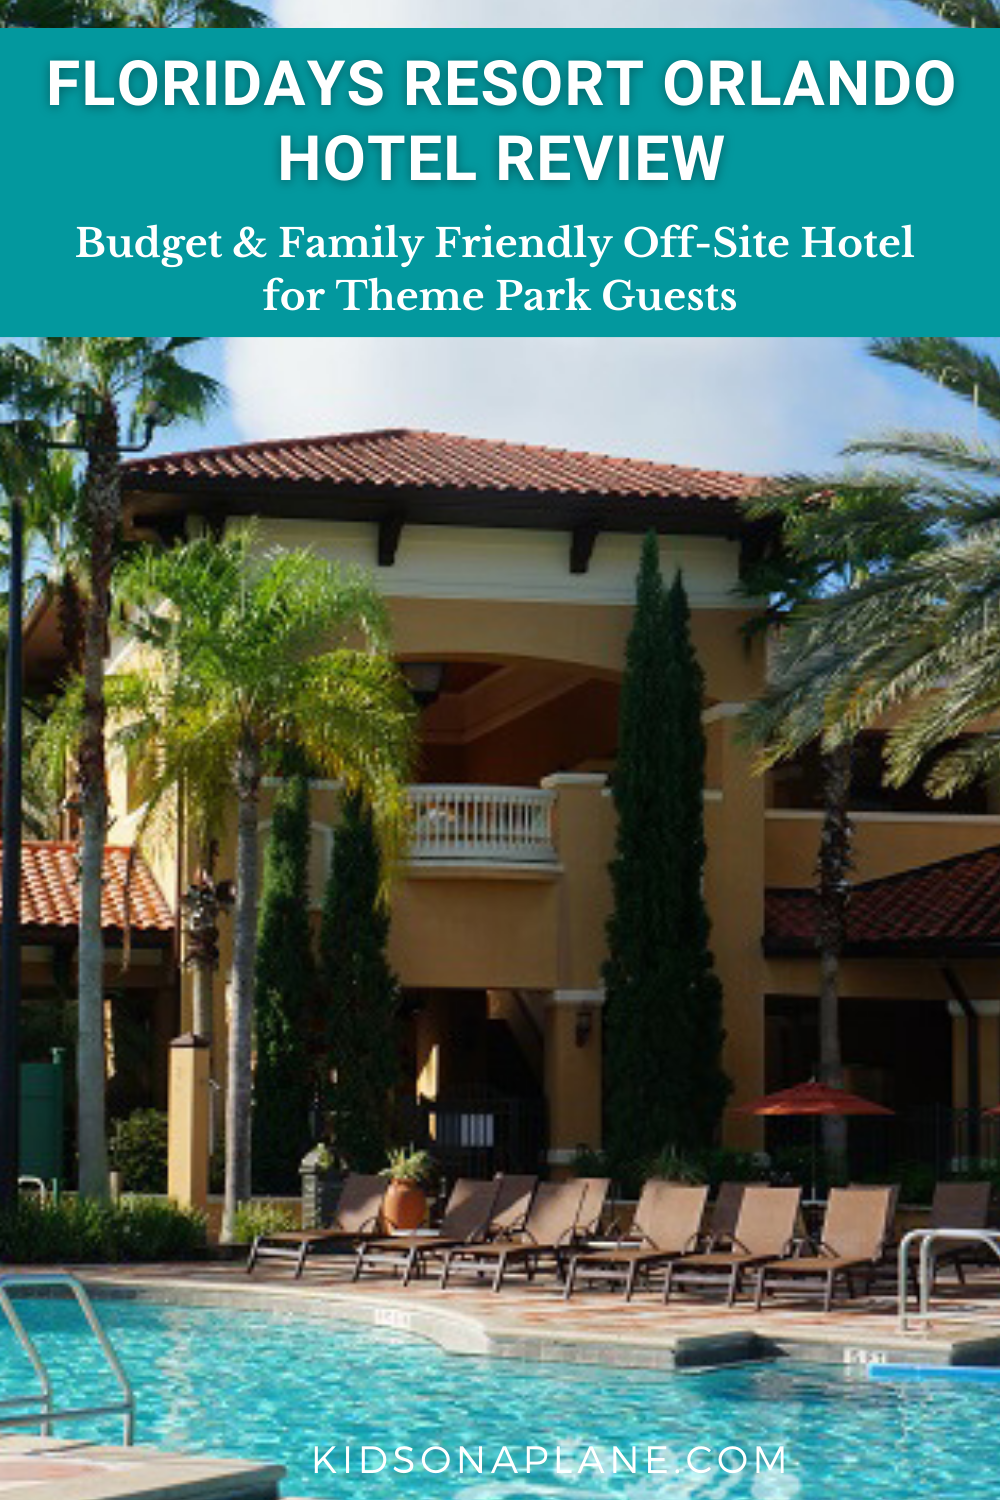 Floridays Orlando Resort Review - Budget Friendly Off Site Option for Families Visiting Disney World and Universal Studios Florida